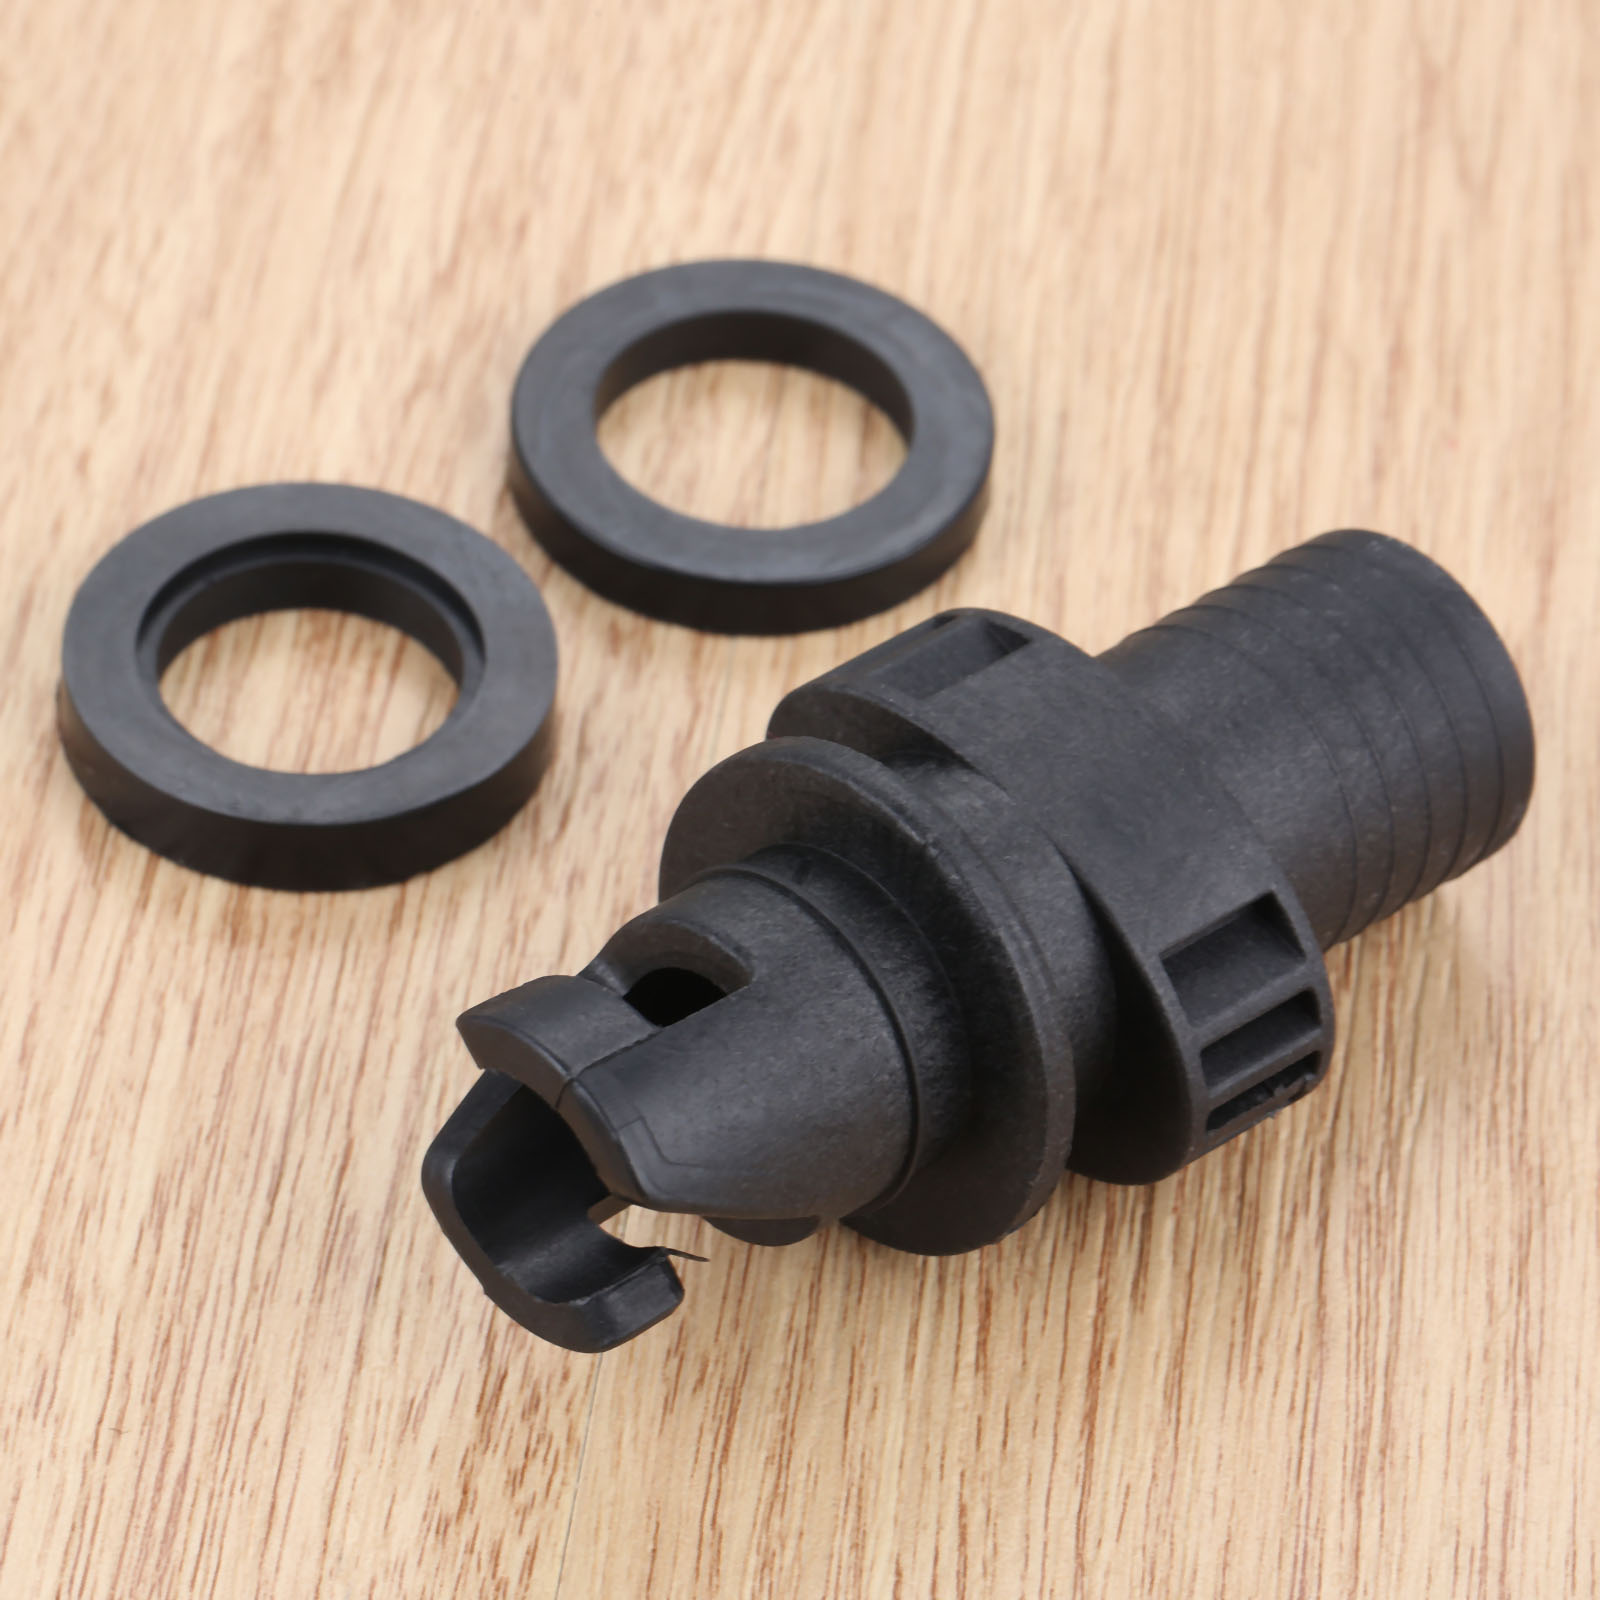 Air Valve Adaptor Connector Inflation Air Pump Hose Screw Valve Or Inflatable Boats Fishing Boat Sup Paddle Board Kayak Canoe